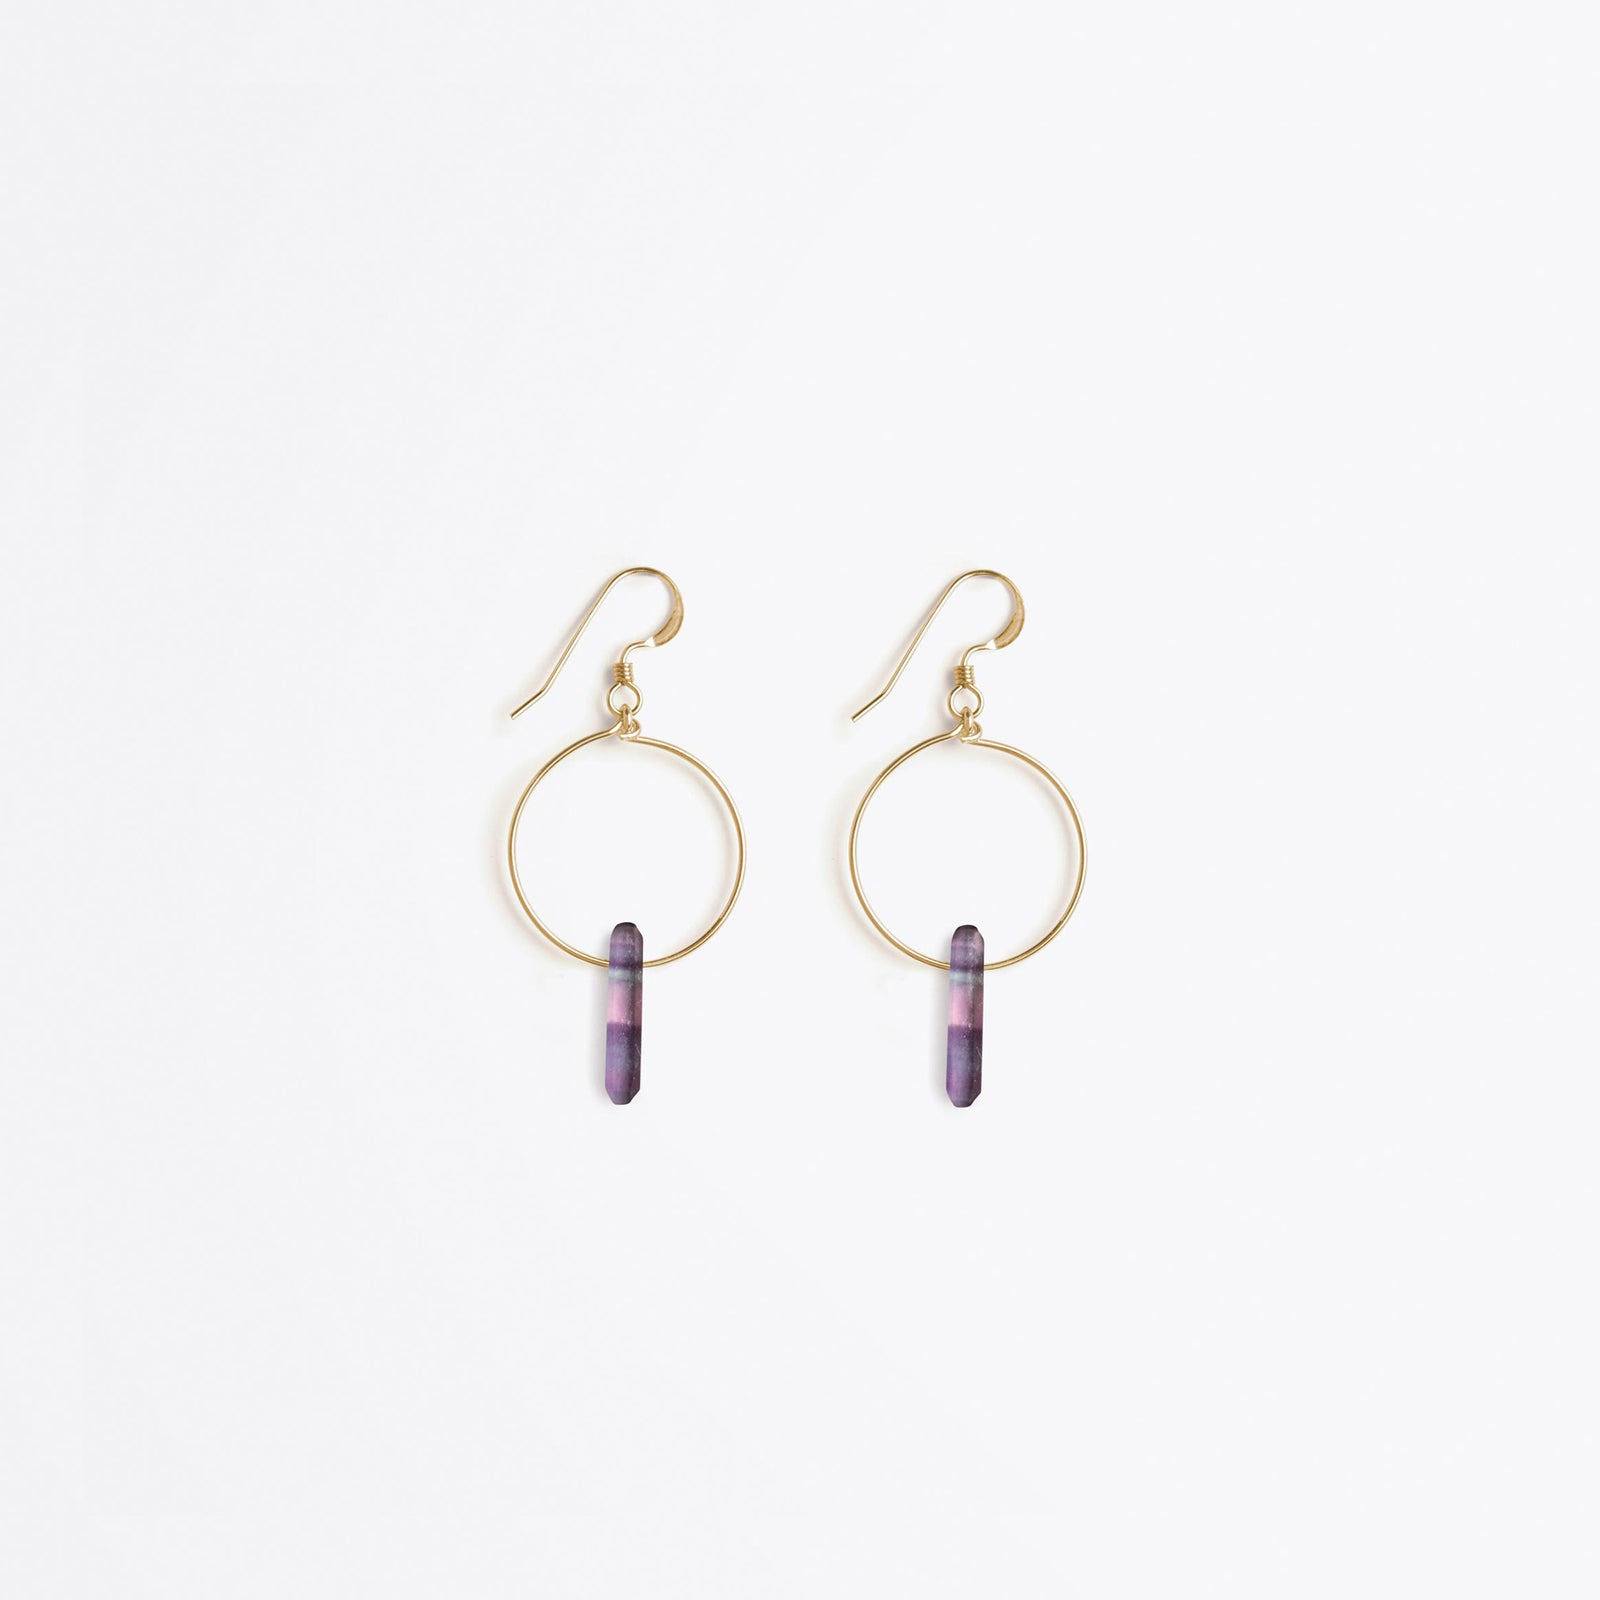 Wanderlust Life Ethically Handmade jewellery made in the UK. Minimalist gold and fine cord jewellery. talisman gold hoop earring, rainbow fluorite